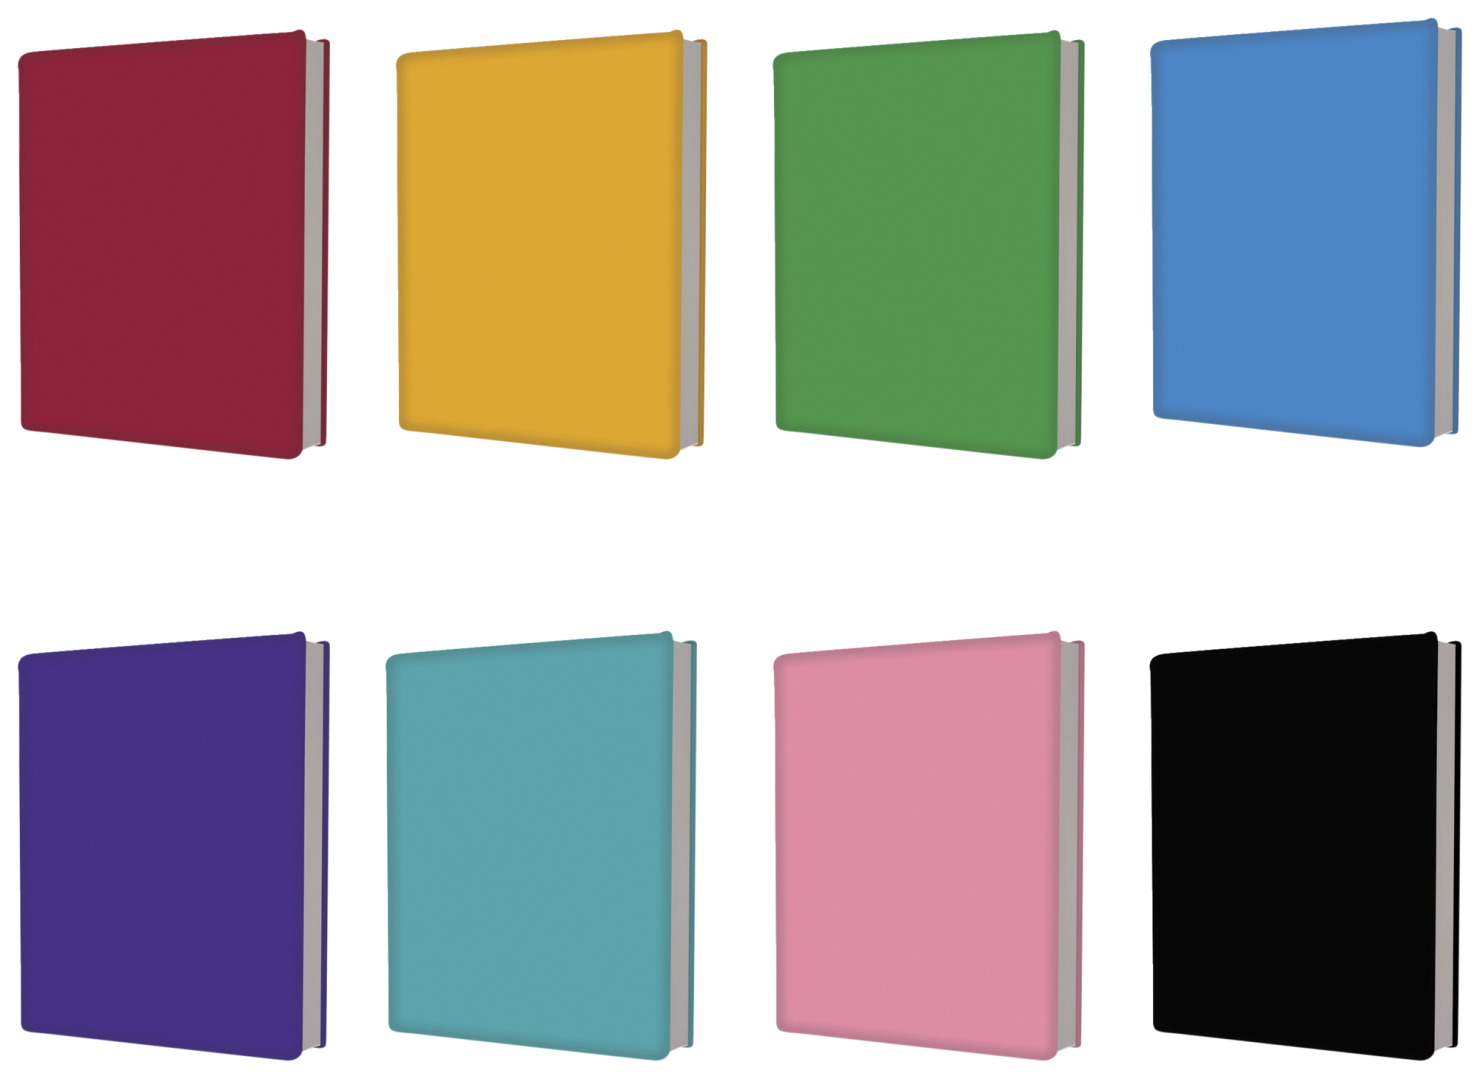 Box Sox Stretchable Fabric Book Cover ~ Kittrich stretchable fabric book cover assorted colors